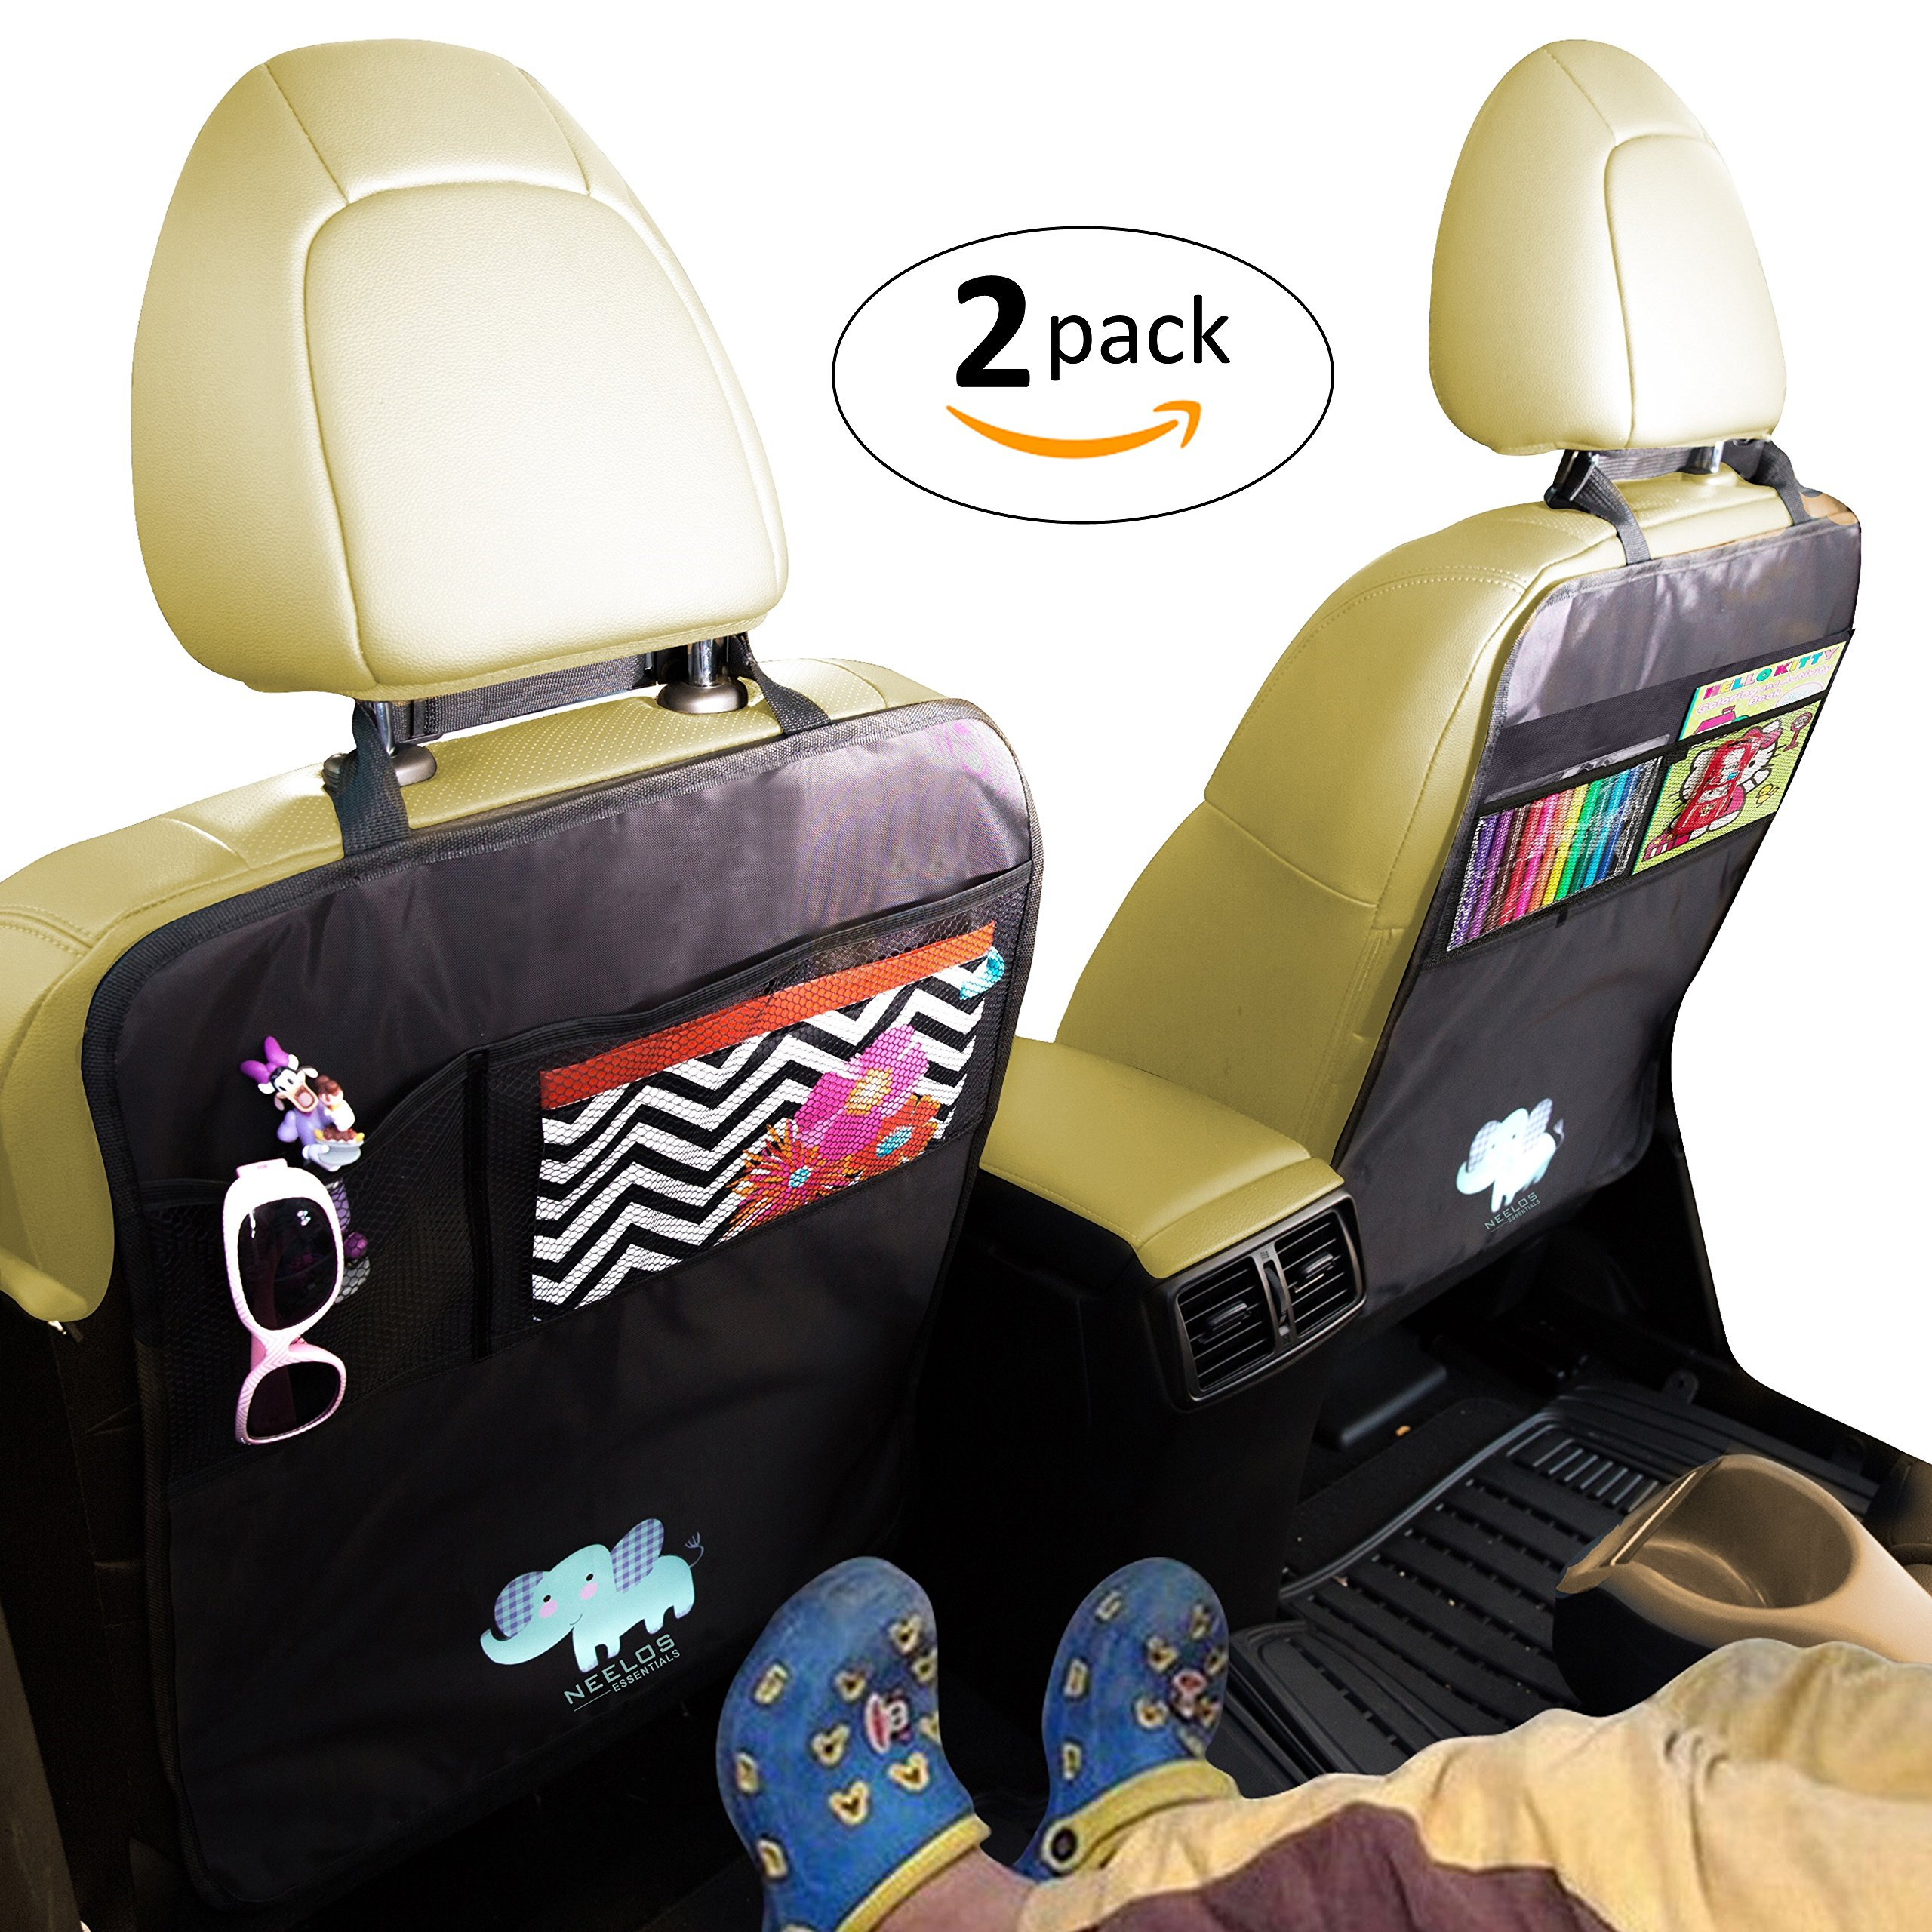 Superior Car Seat Back Protectors, Kick Mats With Organizer, 2 Pack with FREE GIFT - Best Backseat Protector, Universal Fit, Car Seat Covers - Must Have Car Accessories For Kids